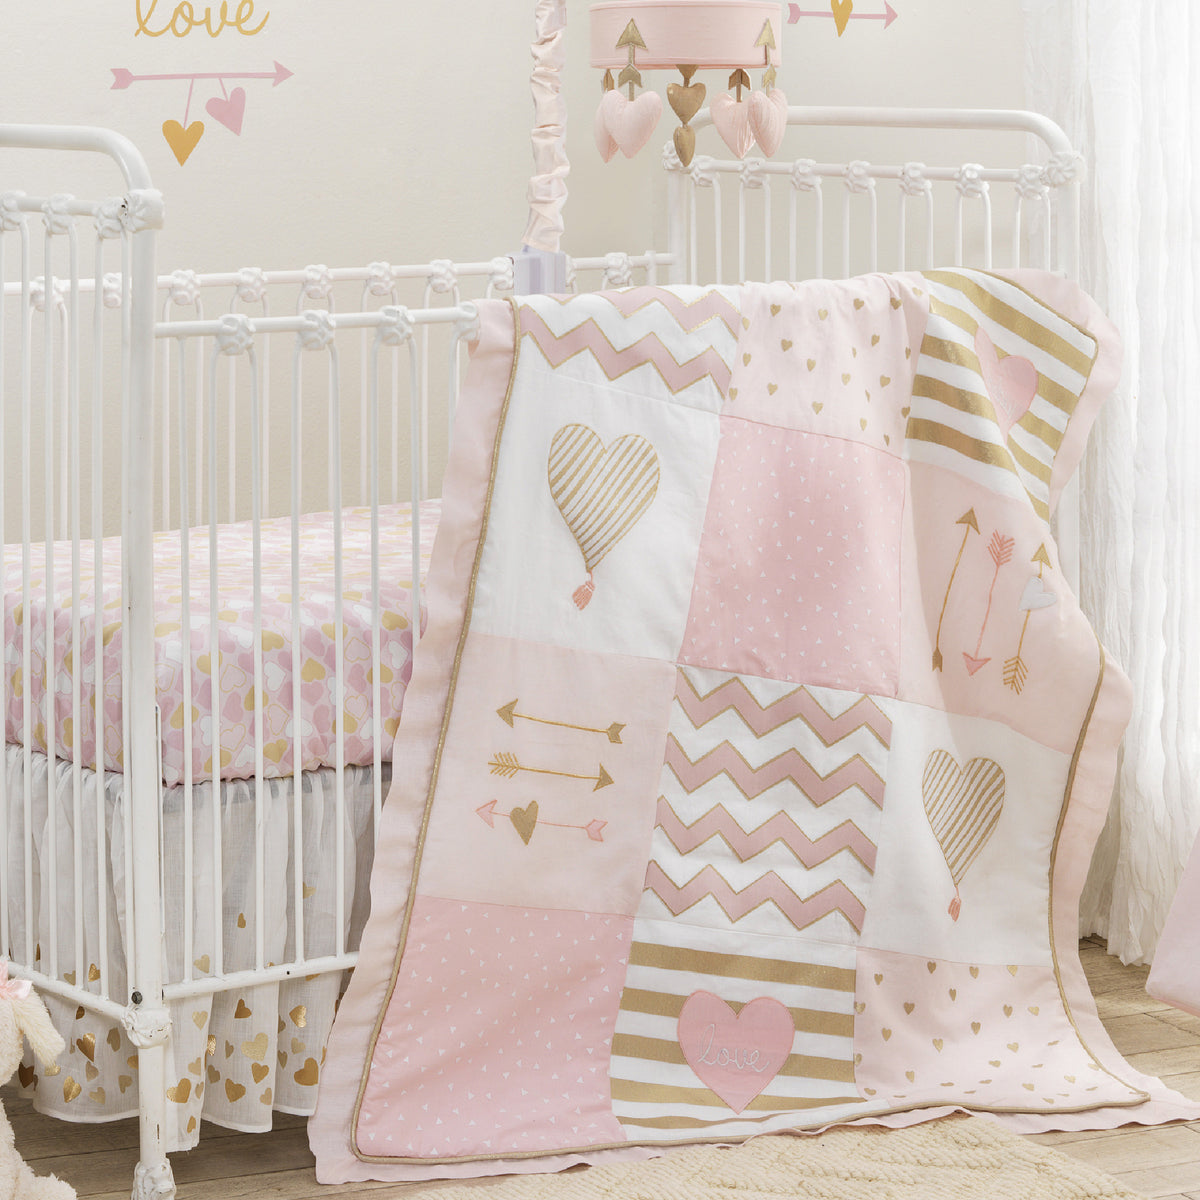 Baby Love Nursery Baby Crib Bedding Collection Lambs Amp Ivy